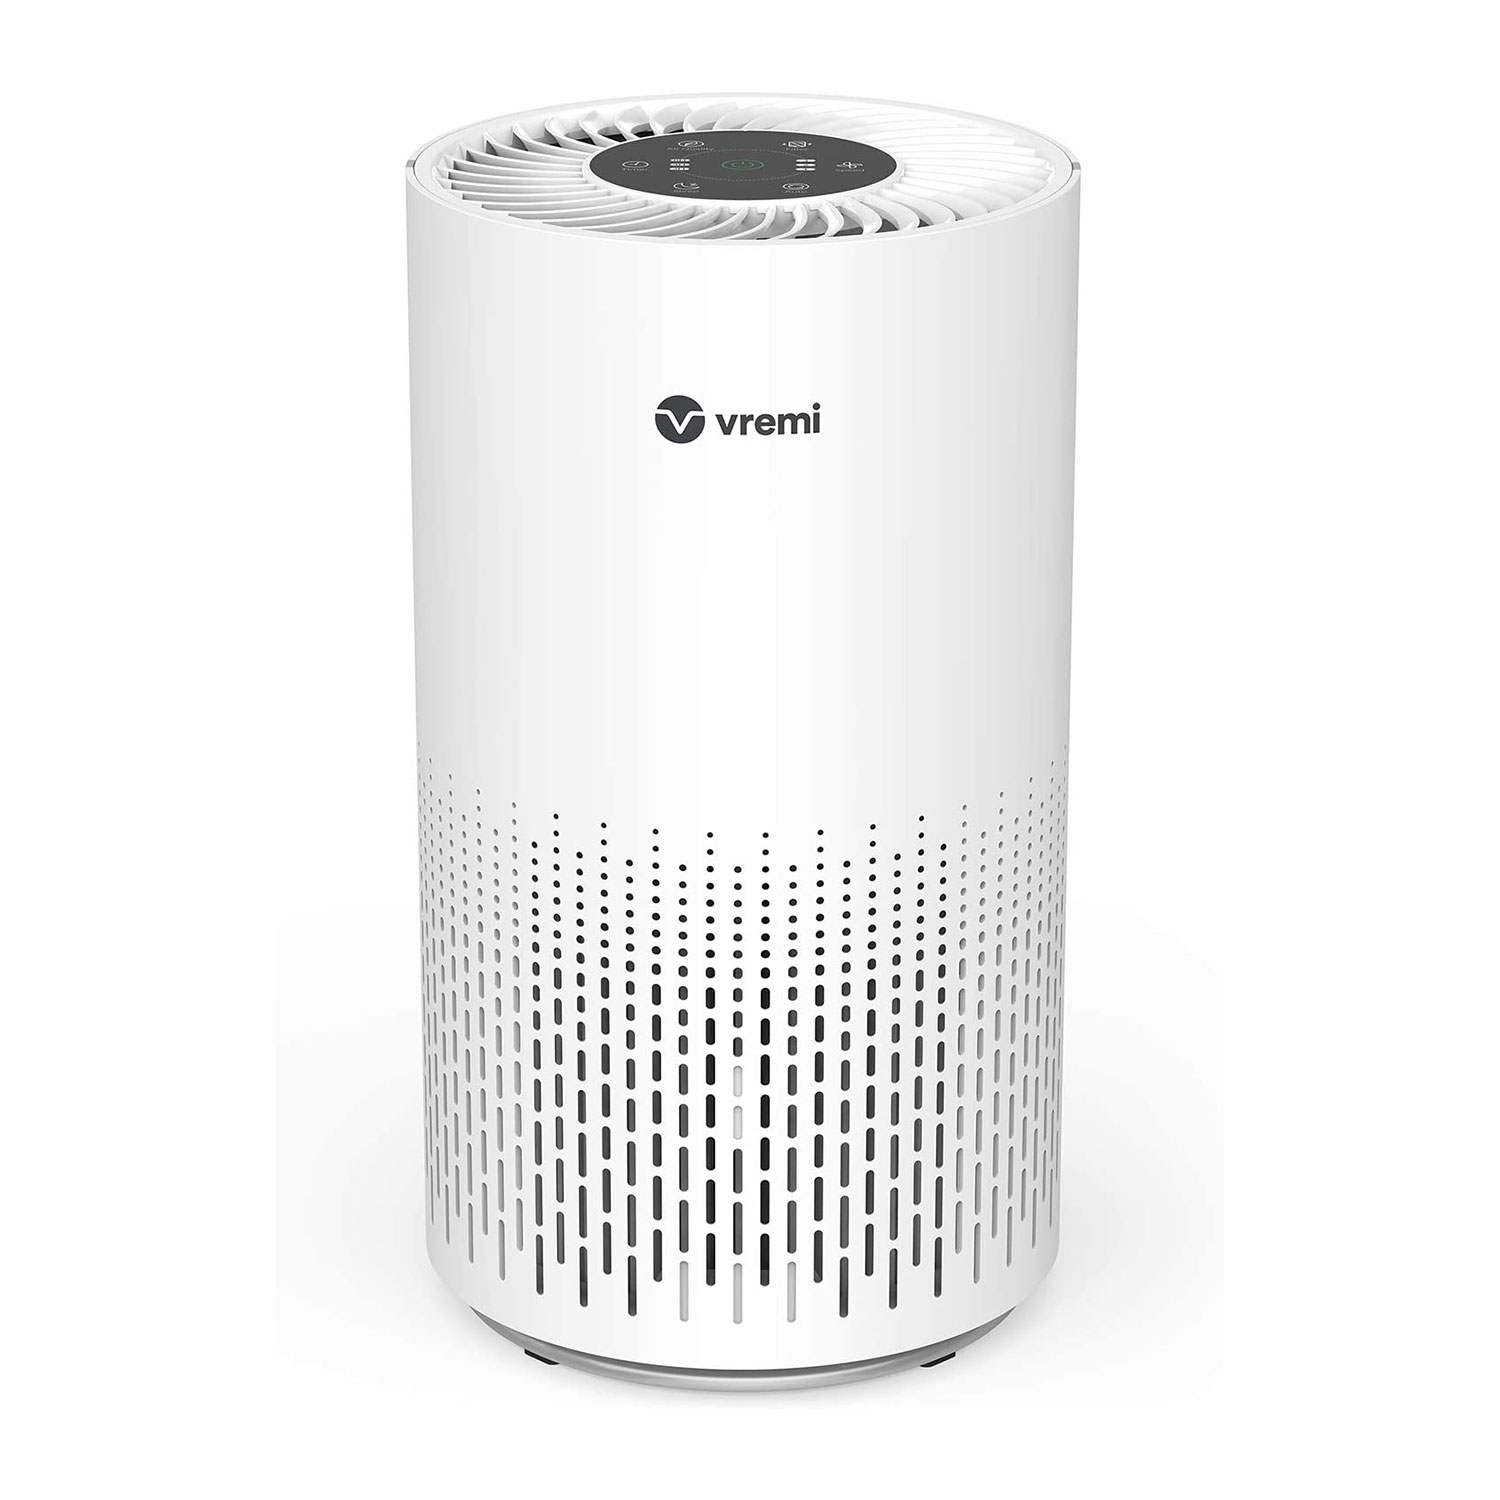 vremi hepa air purifier large rooms